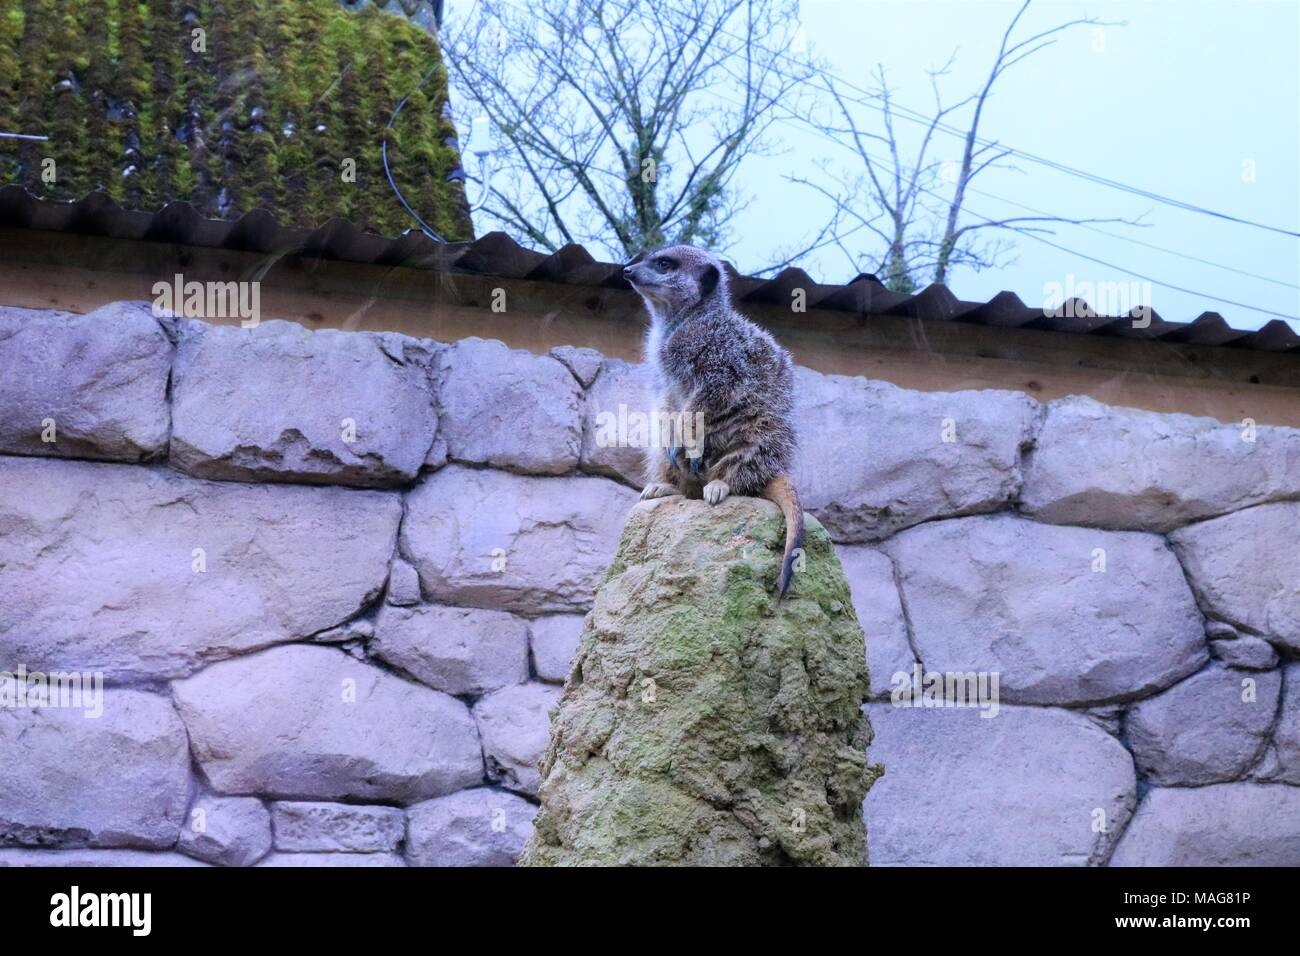 Meerkat at a tourist attraction - Stock Image